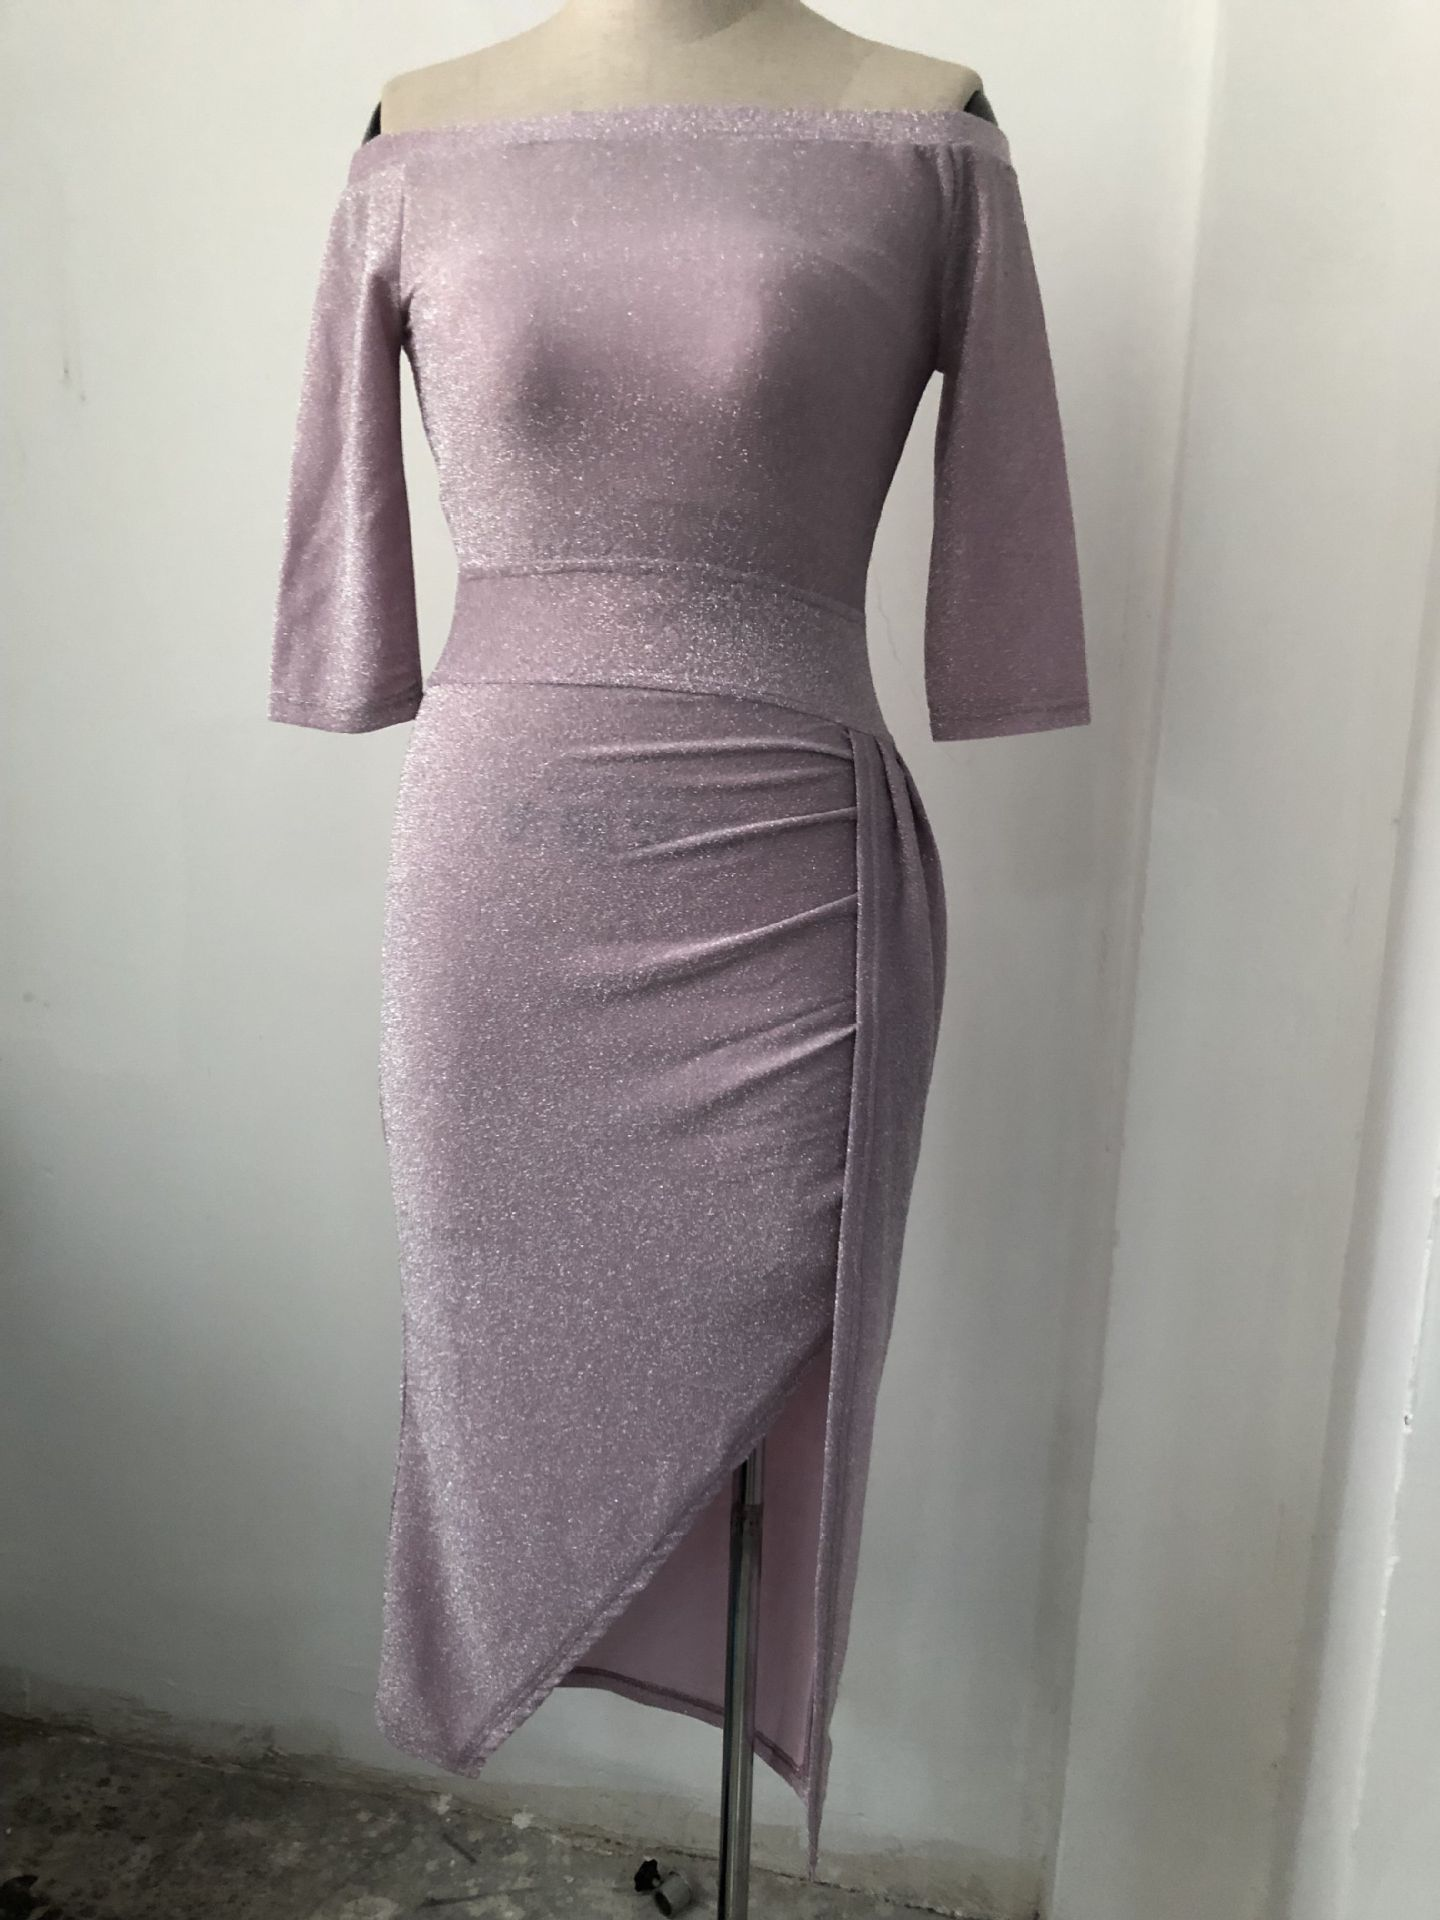 48c73df0d7747 UK Womens Cocktail Party Long Sleeve Bodycon Clubwear Long Split Dress Size  6 16-in Dresses from Women's Clothing on Aliexpress.com   Alibaba Group